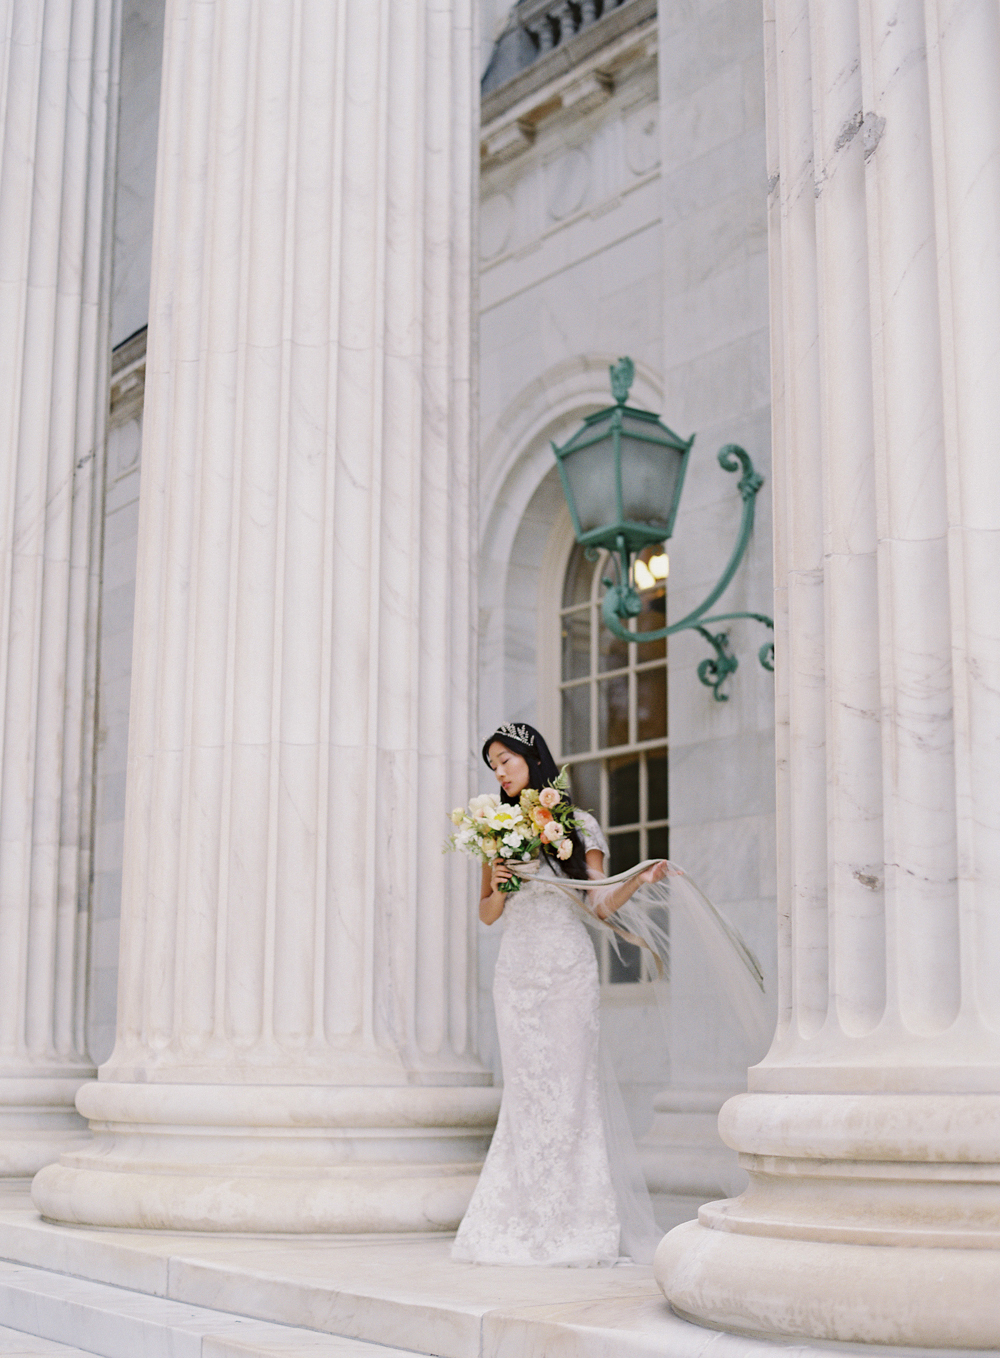 Elegant Colorado courthouse wedding -Carrie King Photographer-005.jpg